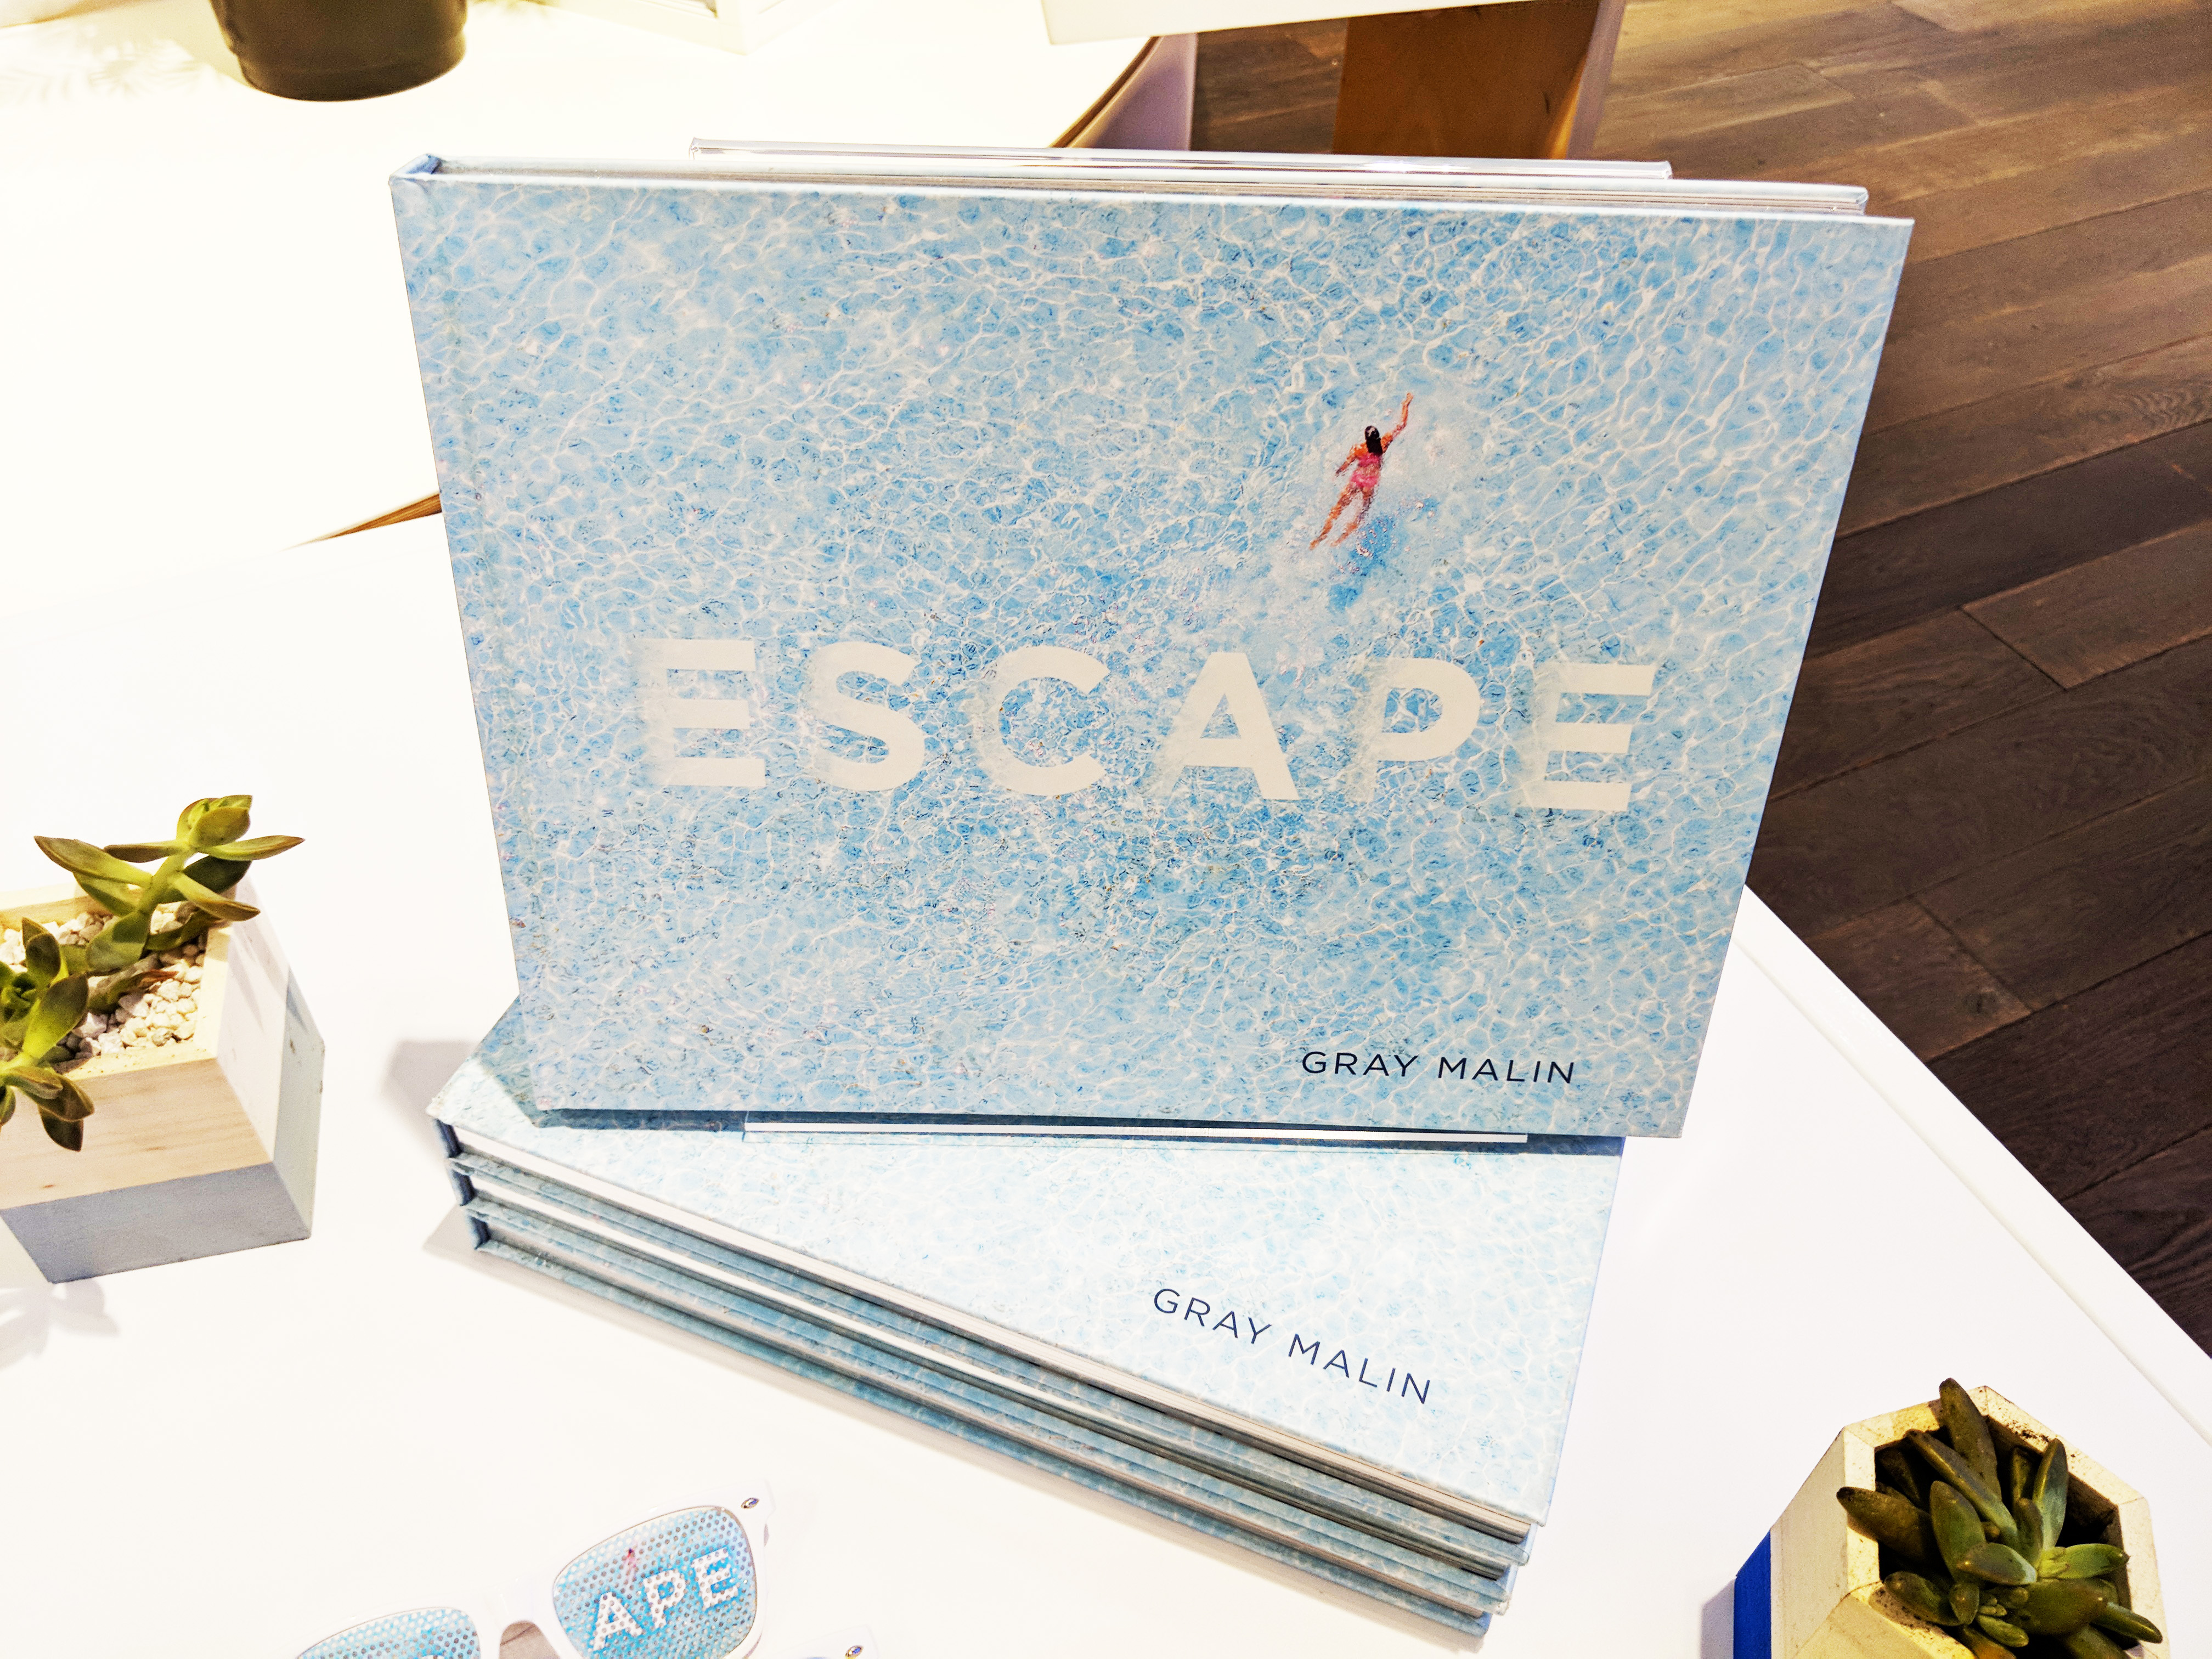 ESCAPE - book by Gray Malin